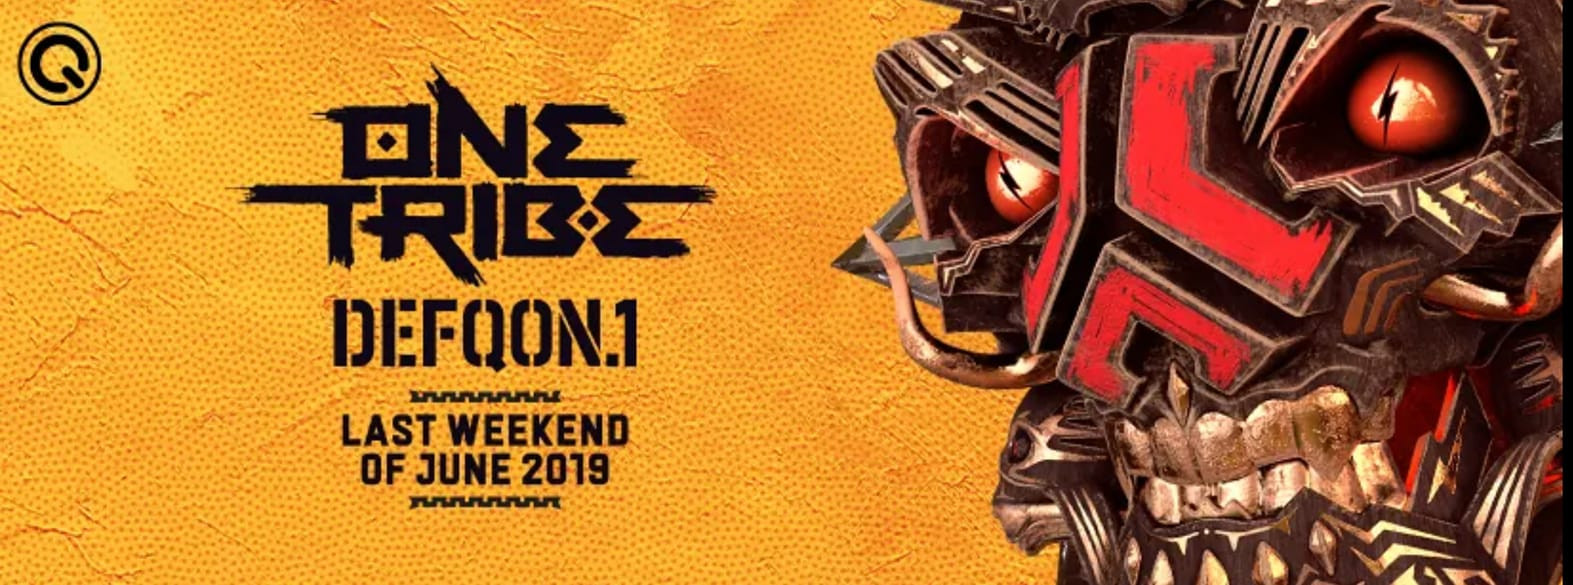 Defqon 1-SOLD OUT | GIS Events & Tours-Hardstyle & Hardcore